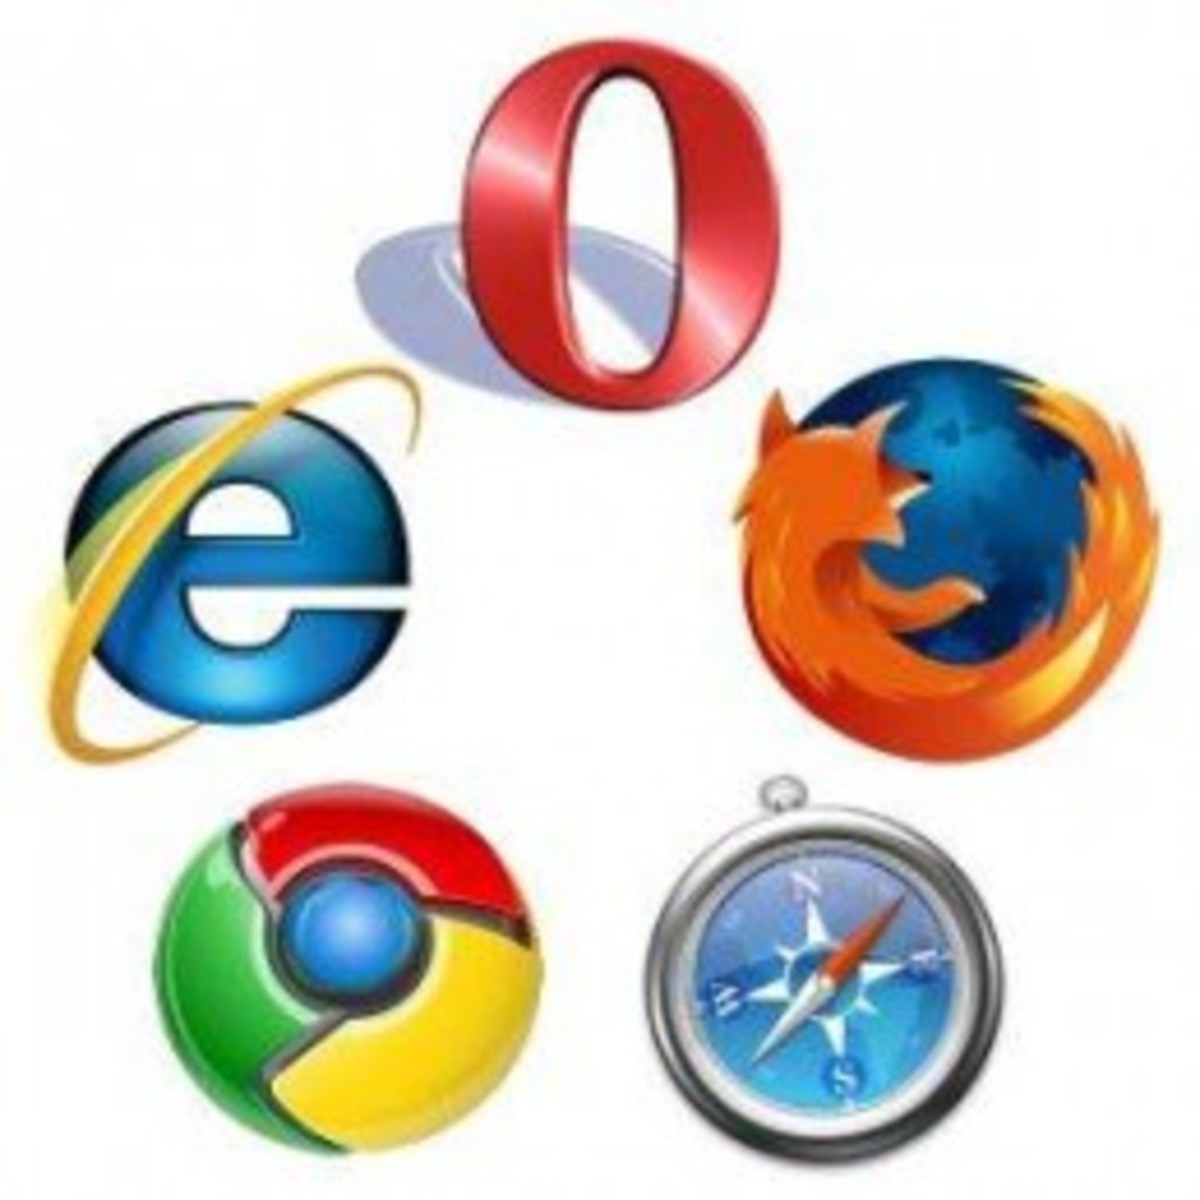 List of The Top 5 Modern Web Browsers